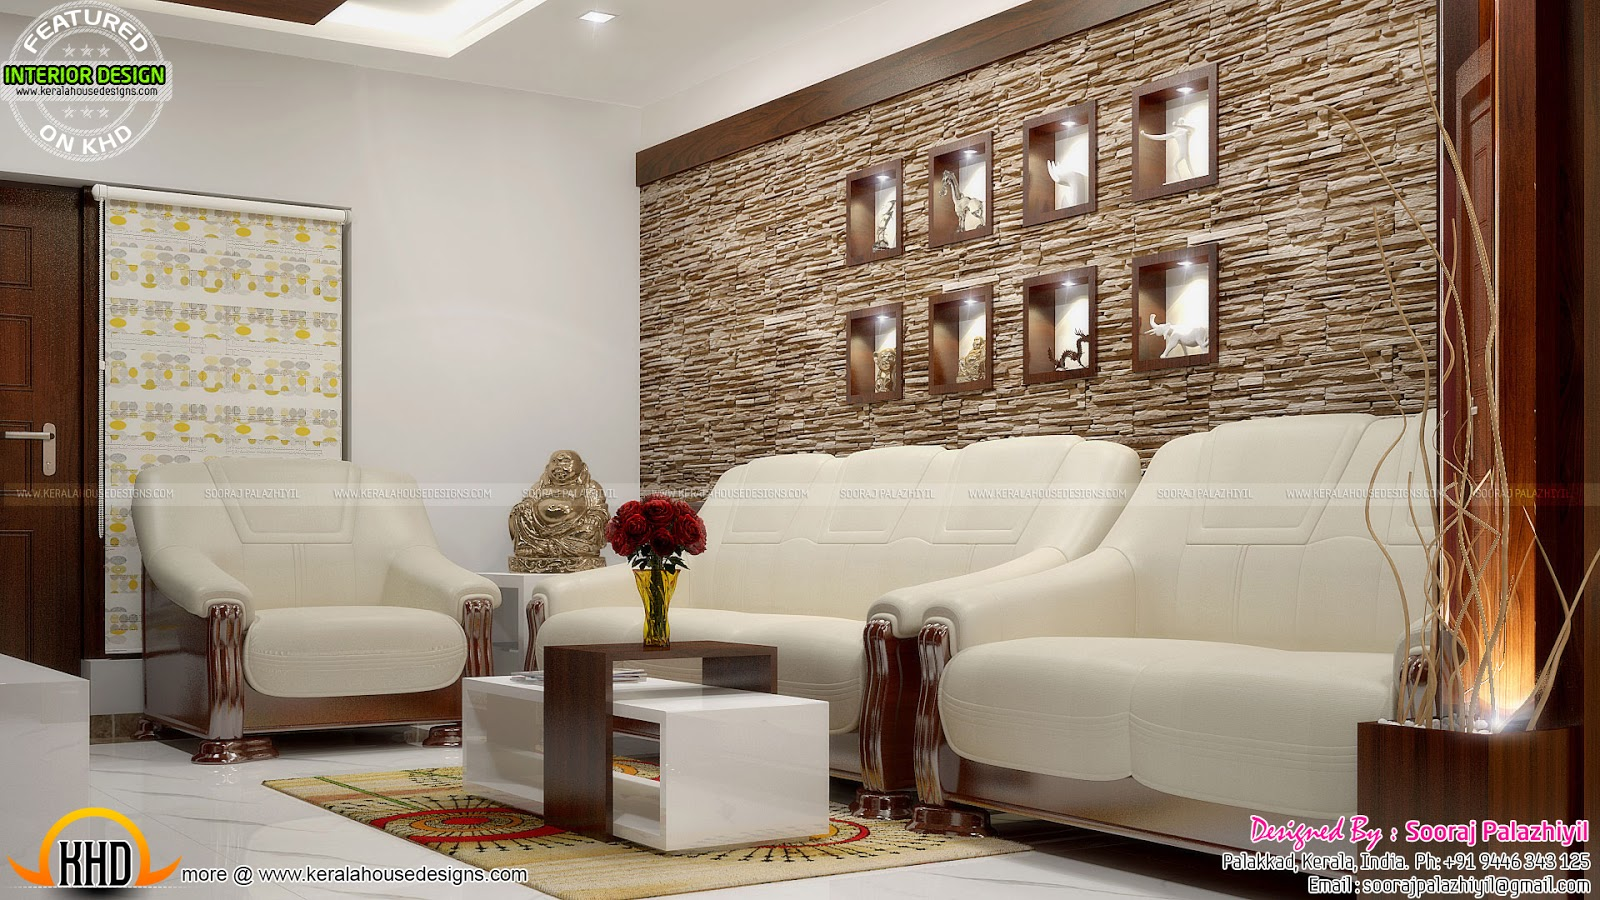 Simple apartment interior in kerala kerala home design for Simple house interior design ideas